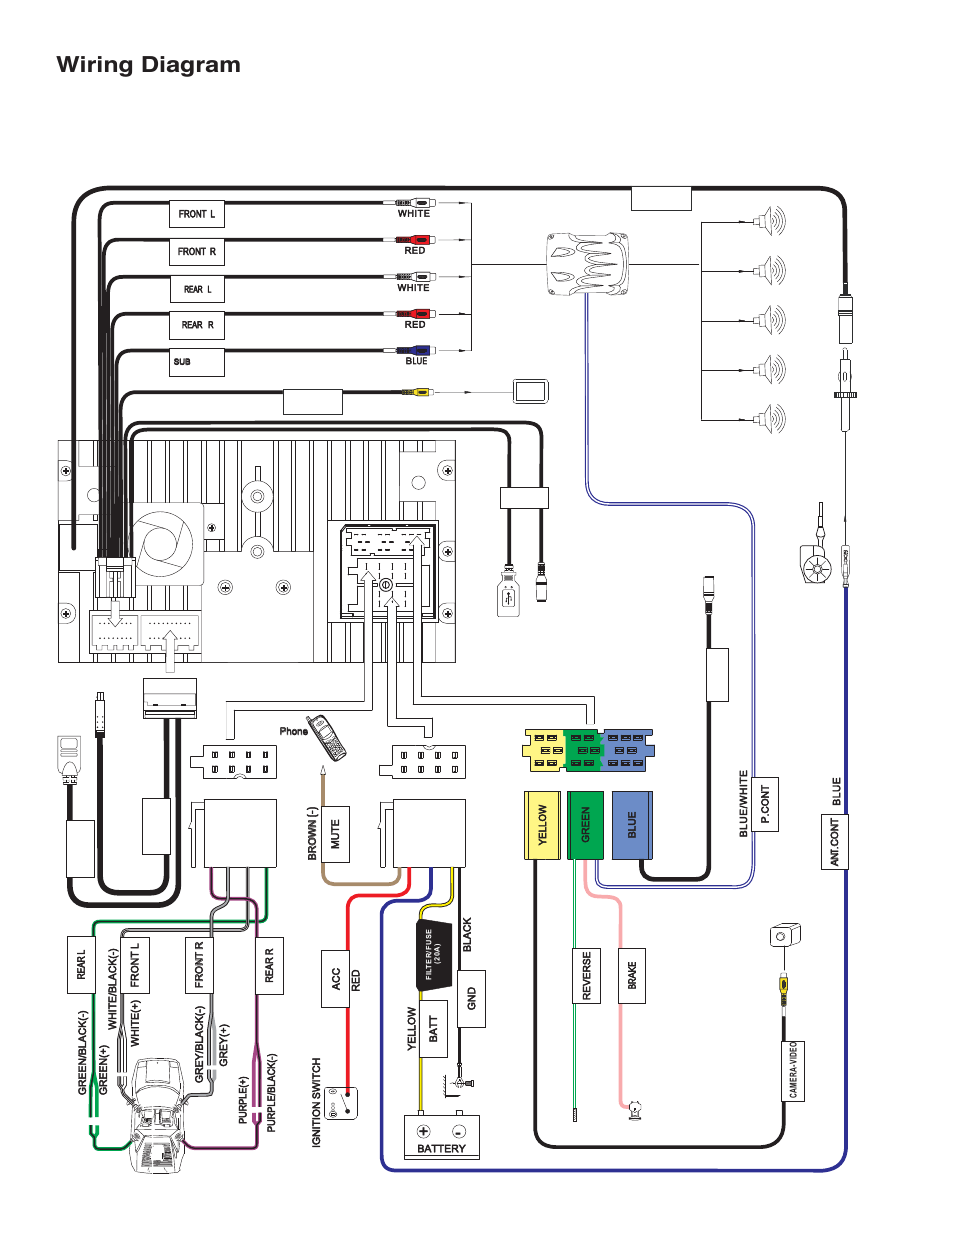 Viper 5900 Wiring Diagram : 25 Wiring Diagram Images - Wiring ... on viper 5904 installation diagram, viper auto start, viper alarm owners manual, abs diagram, viper 4103 wiring-diagram, viper door lock wiring guide, street rod brake system diagram, car diagram, flow diagram, viper blueprints, viper 211hv wiring-diagram, cat diagram, viper 791xv wiring-diagram, scr diagram, viper auto alarm sensor, viper alarm power supply, viper alarm lights, viper alarm instruction manual, vehicle alarm system diagram, viper alarm system,